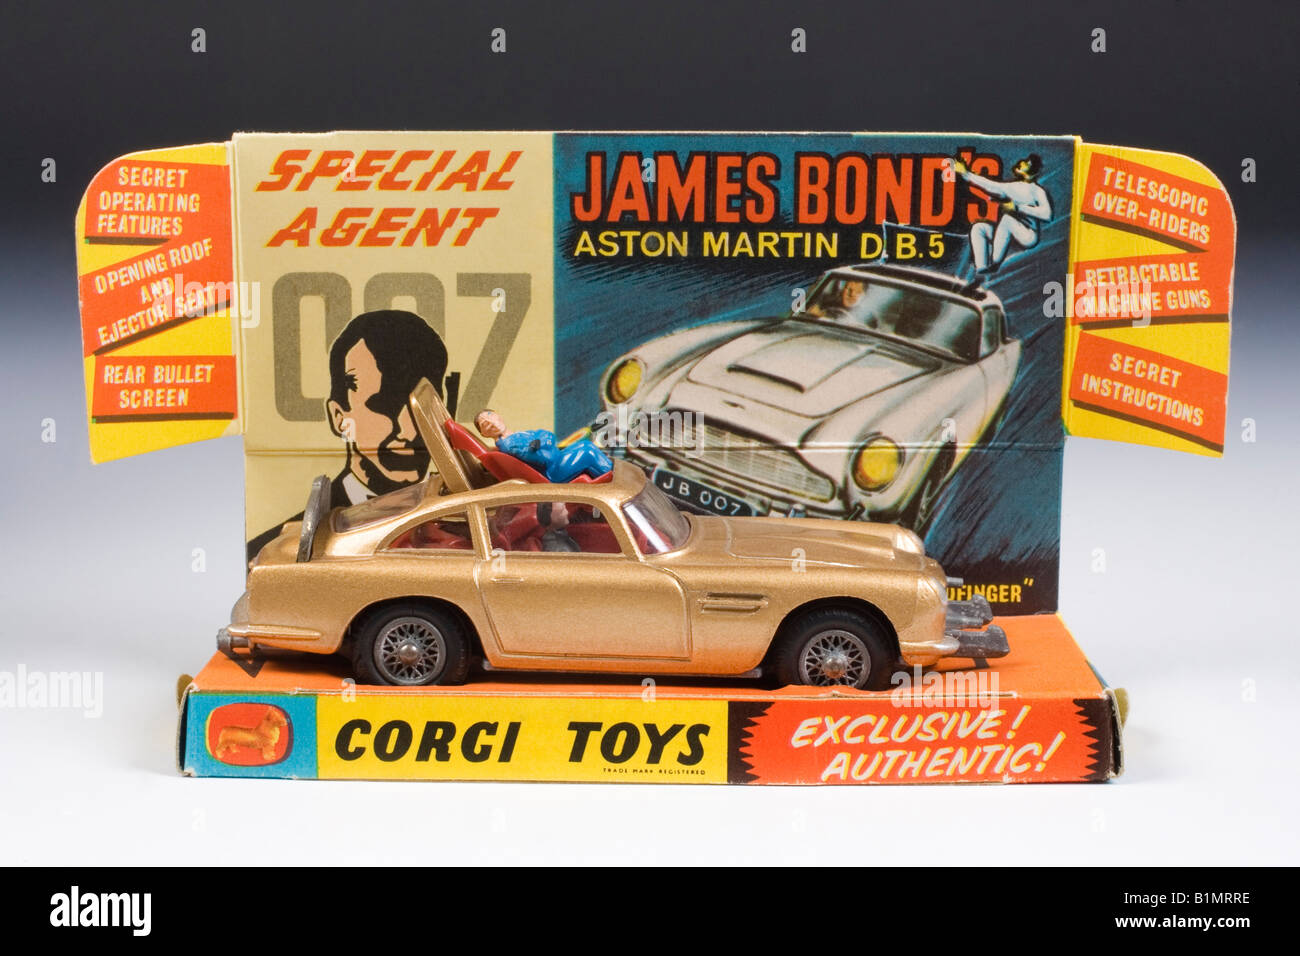 Corgi James Bond Aston Martin Db5 Original